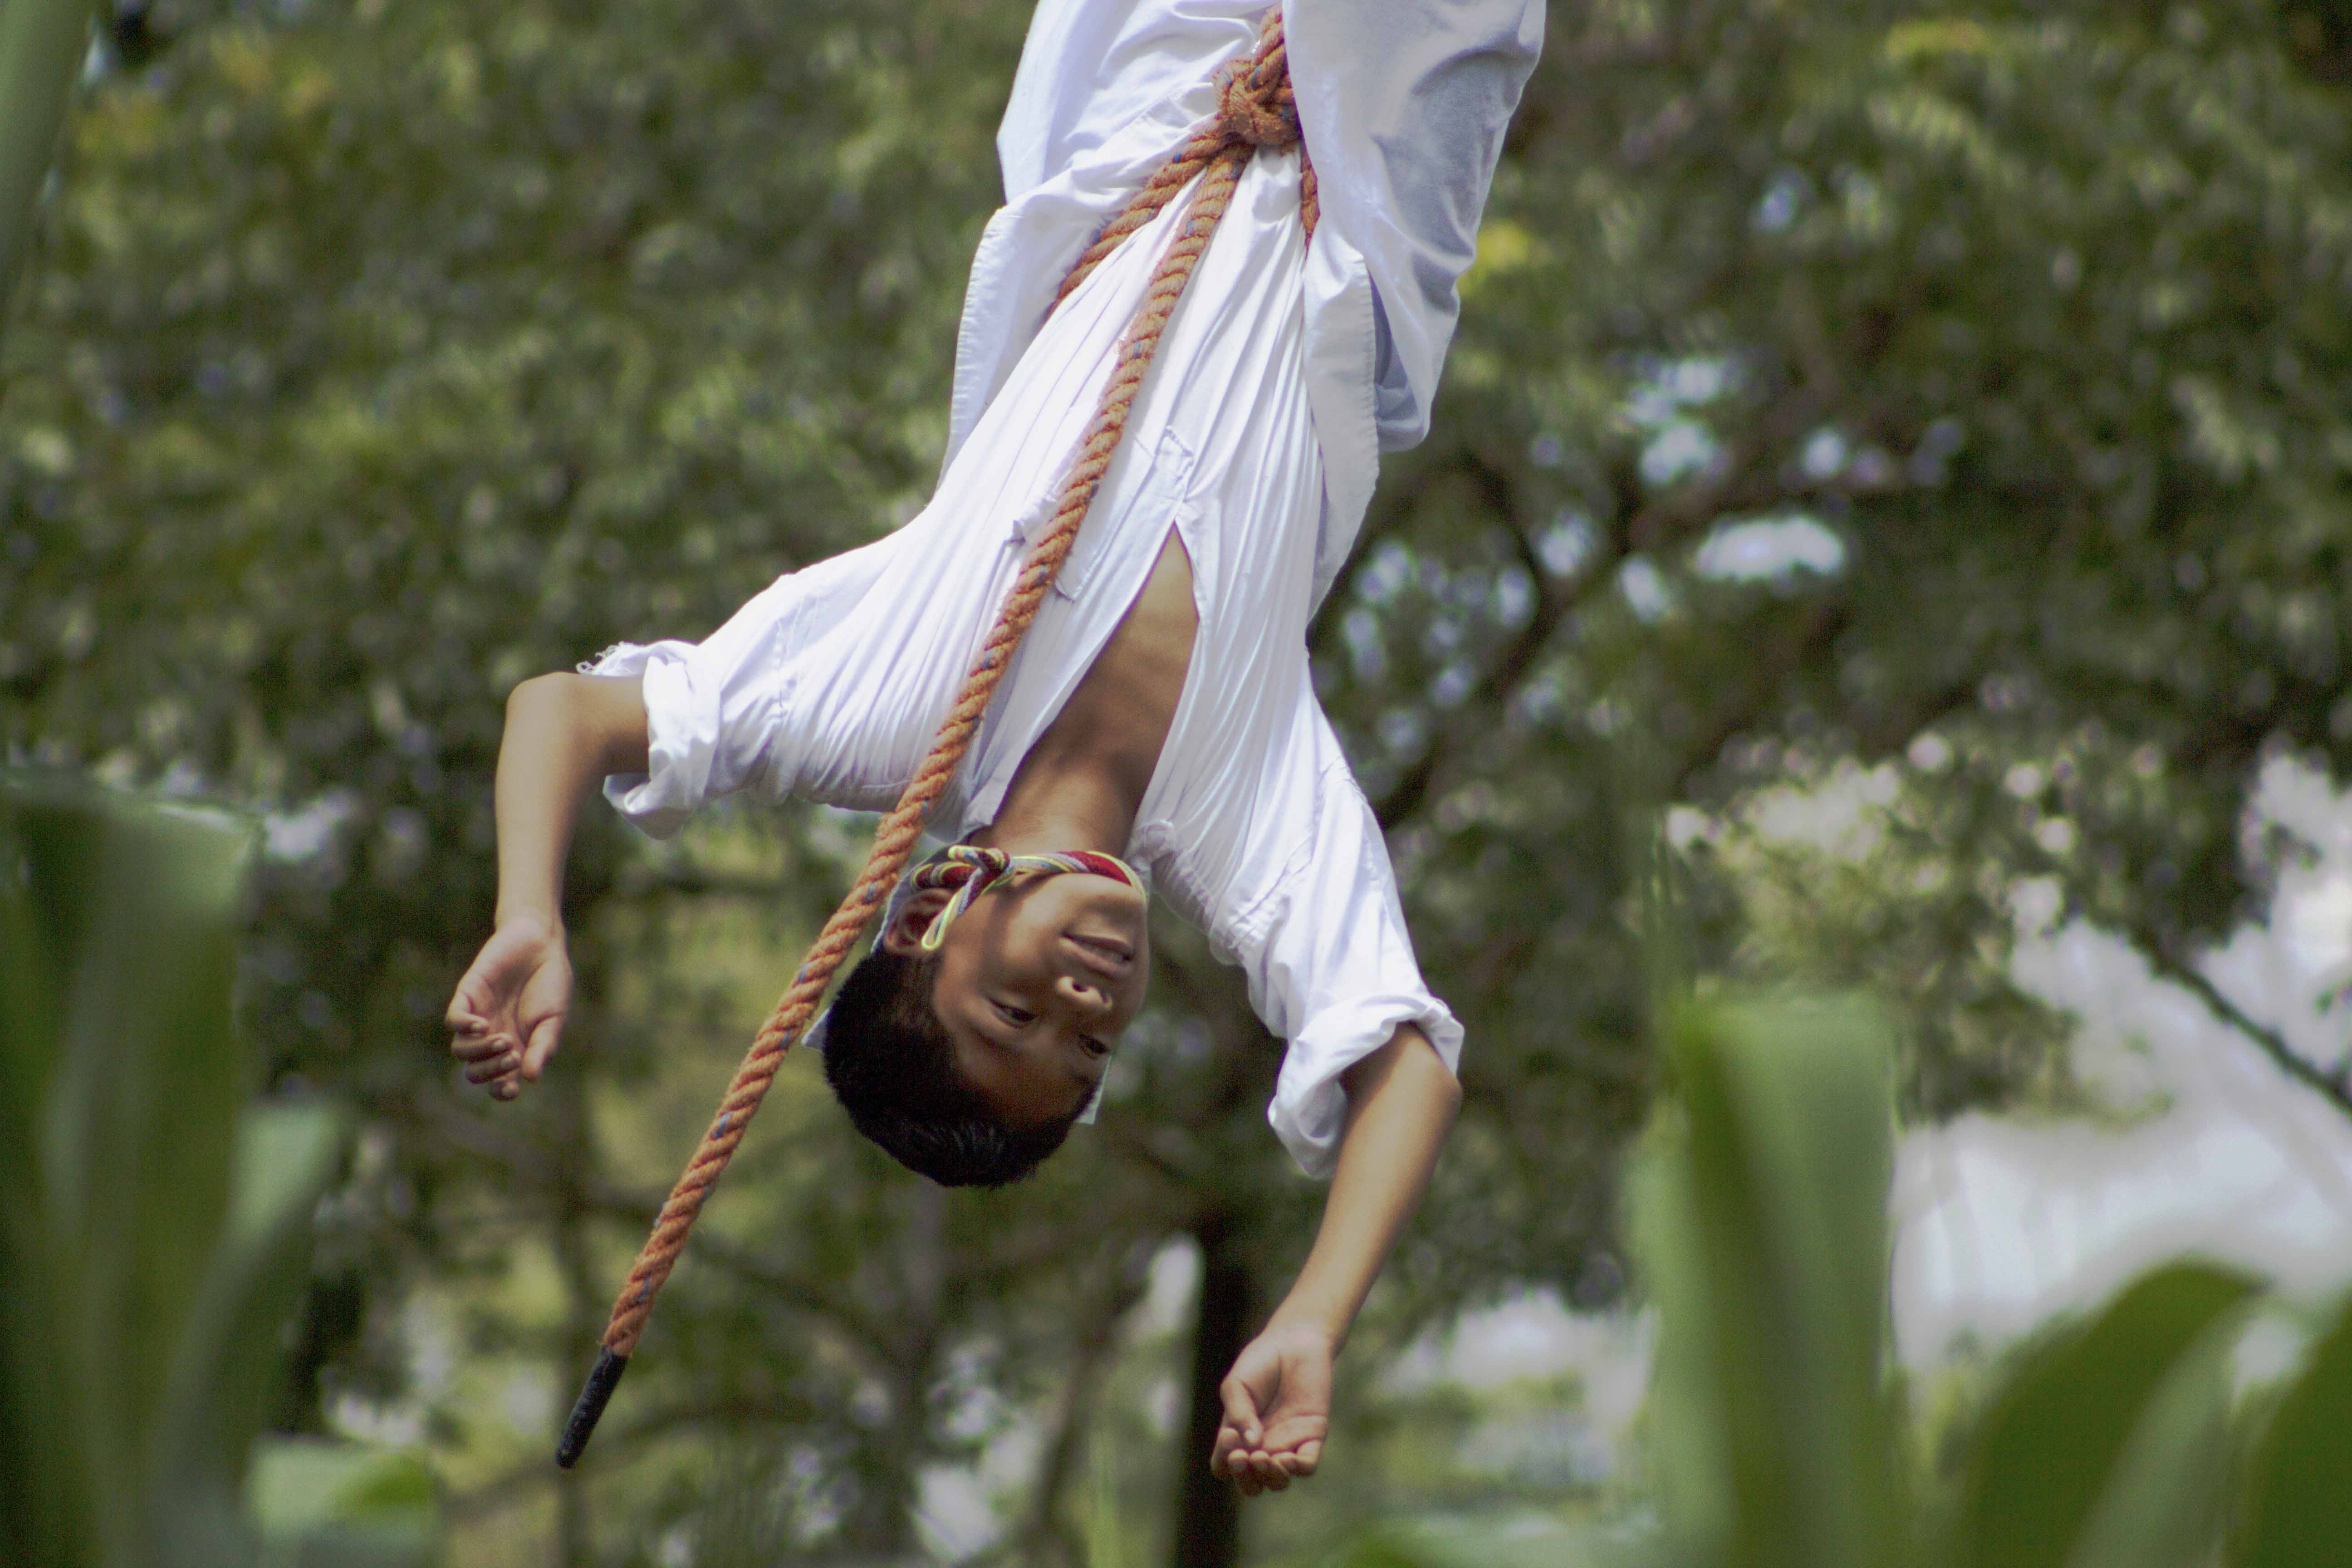 A young volador practices at his flying school. (Photo by Amado Treviño)